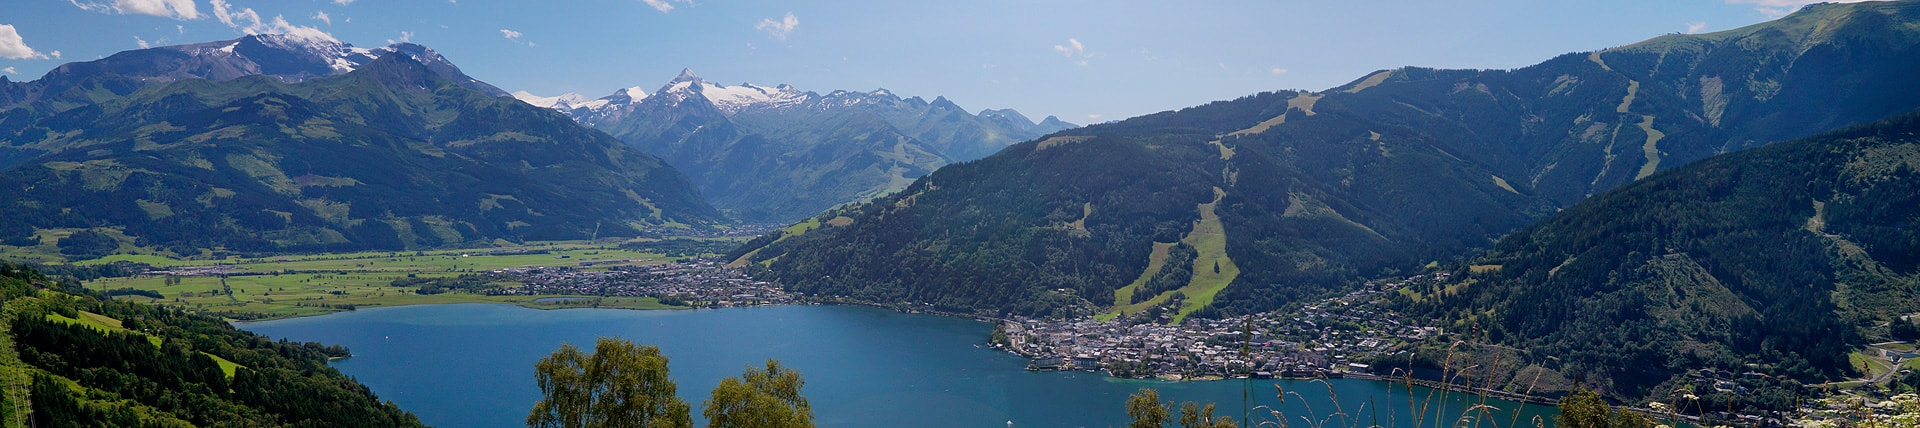 Annika Appartements - Zell am See